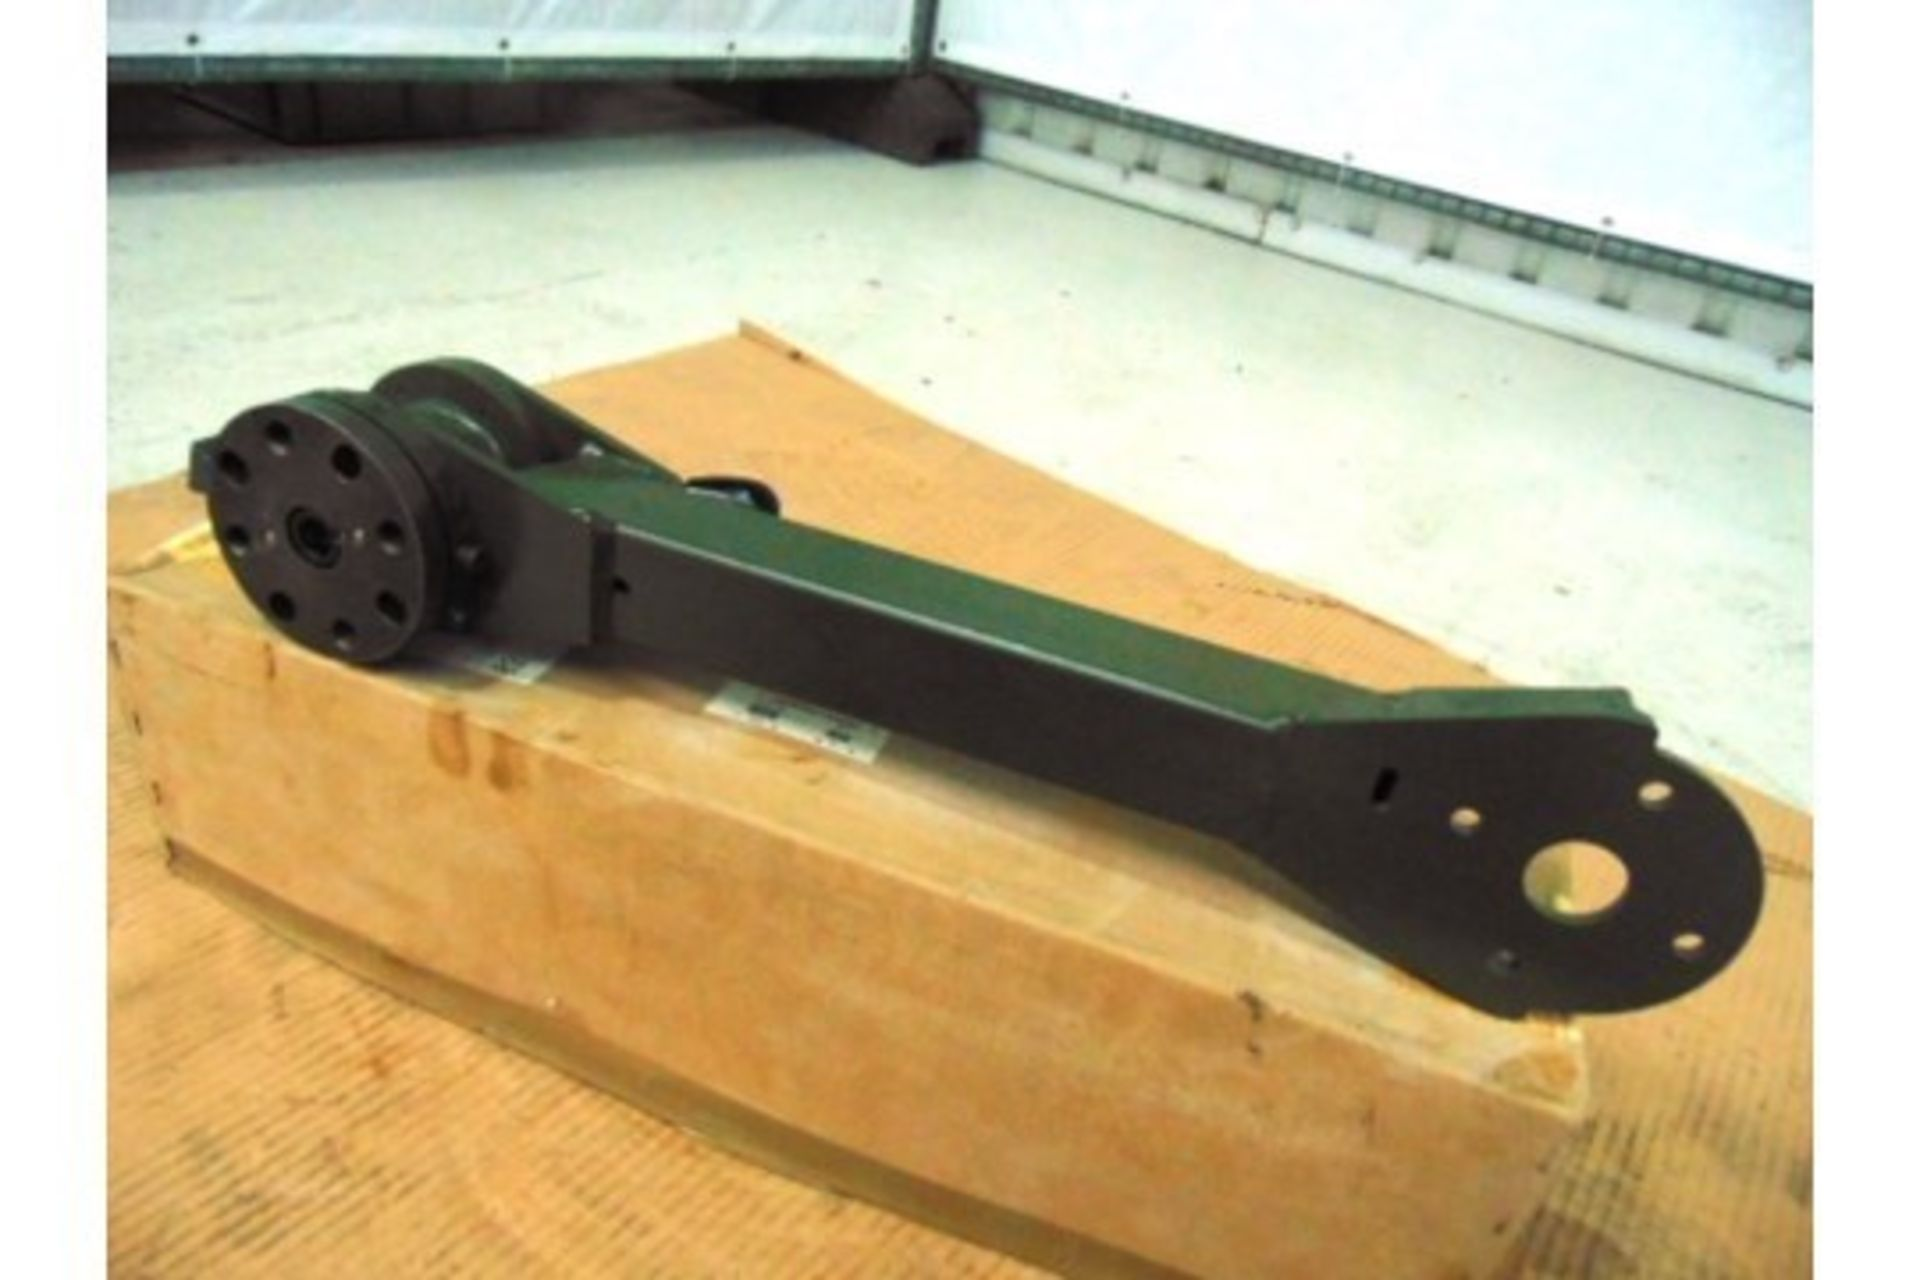 Lotto 26396 - Land Rover WMIK Weapons Mount Swing Arm Assy